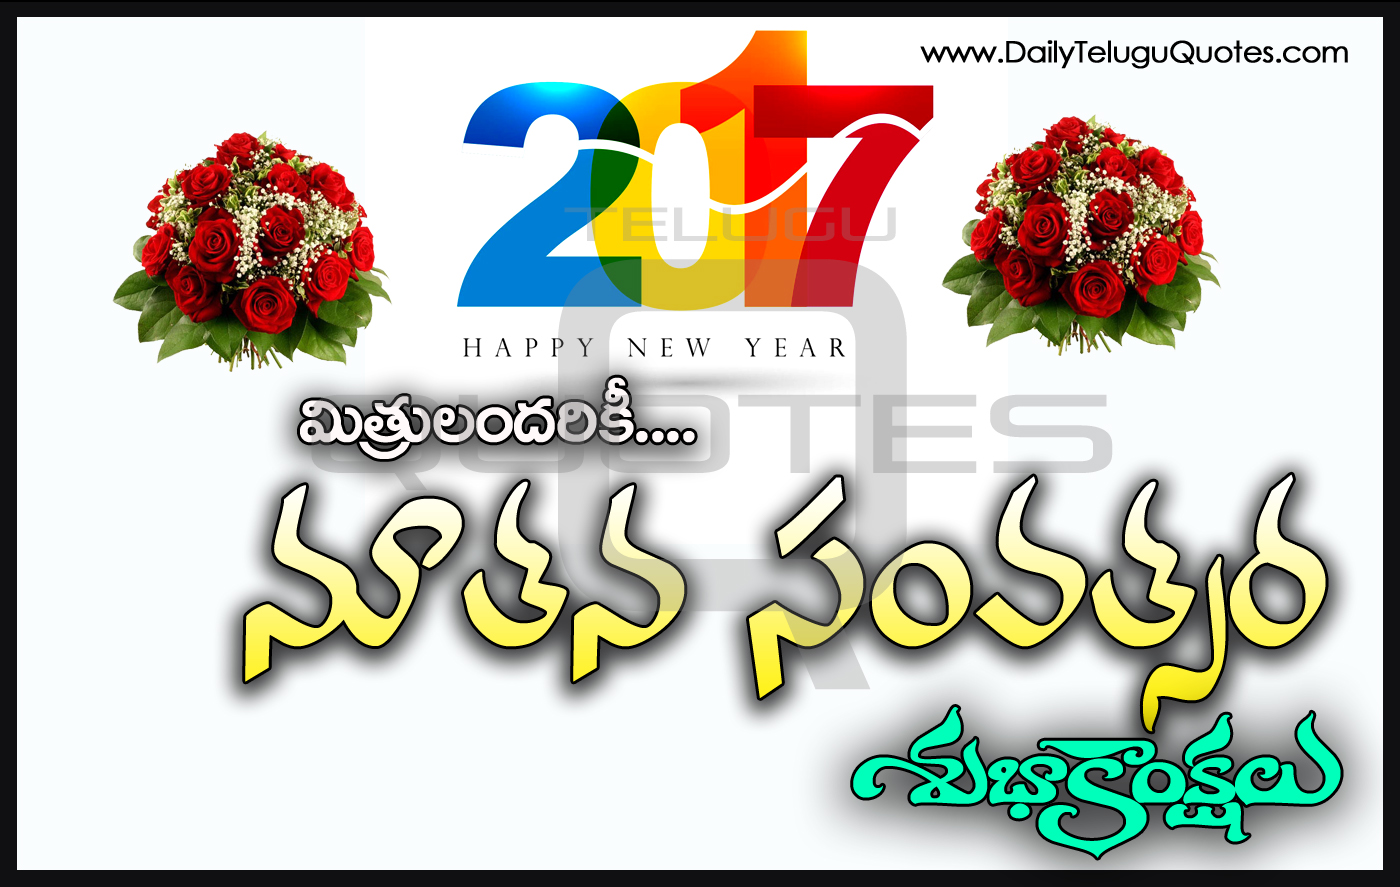 happy new year 2017 telugu quotes images wallpapers